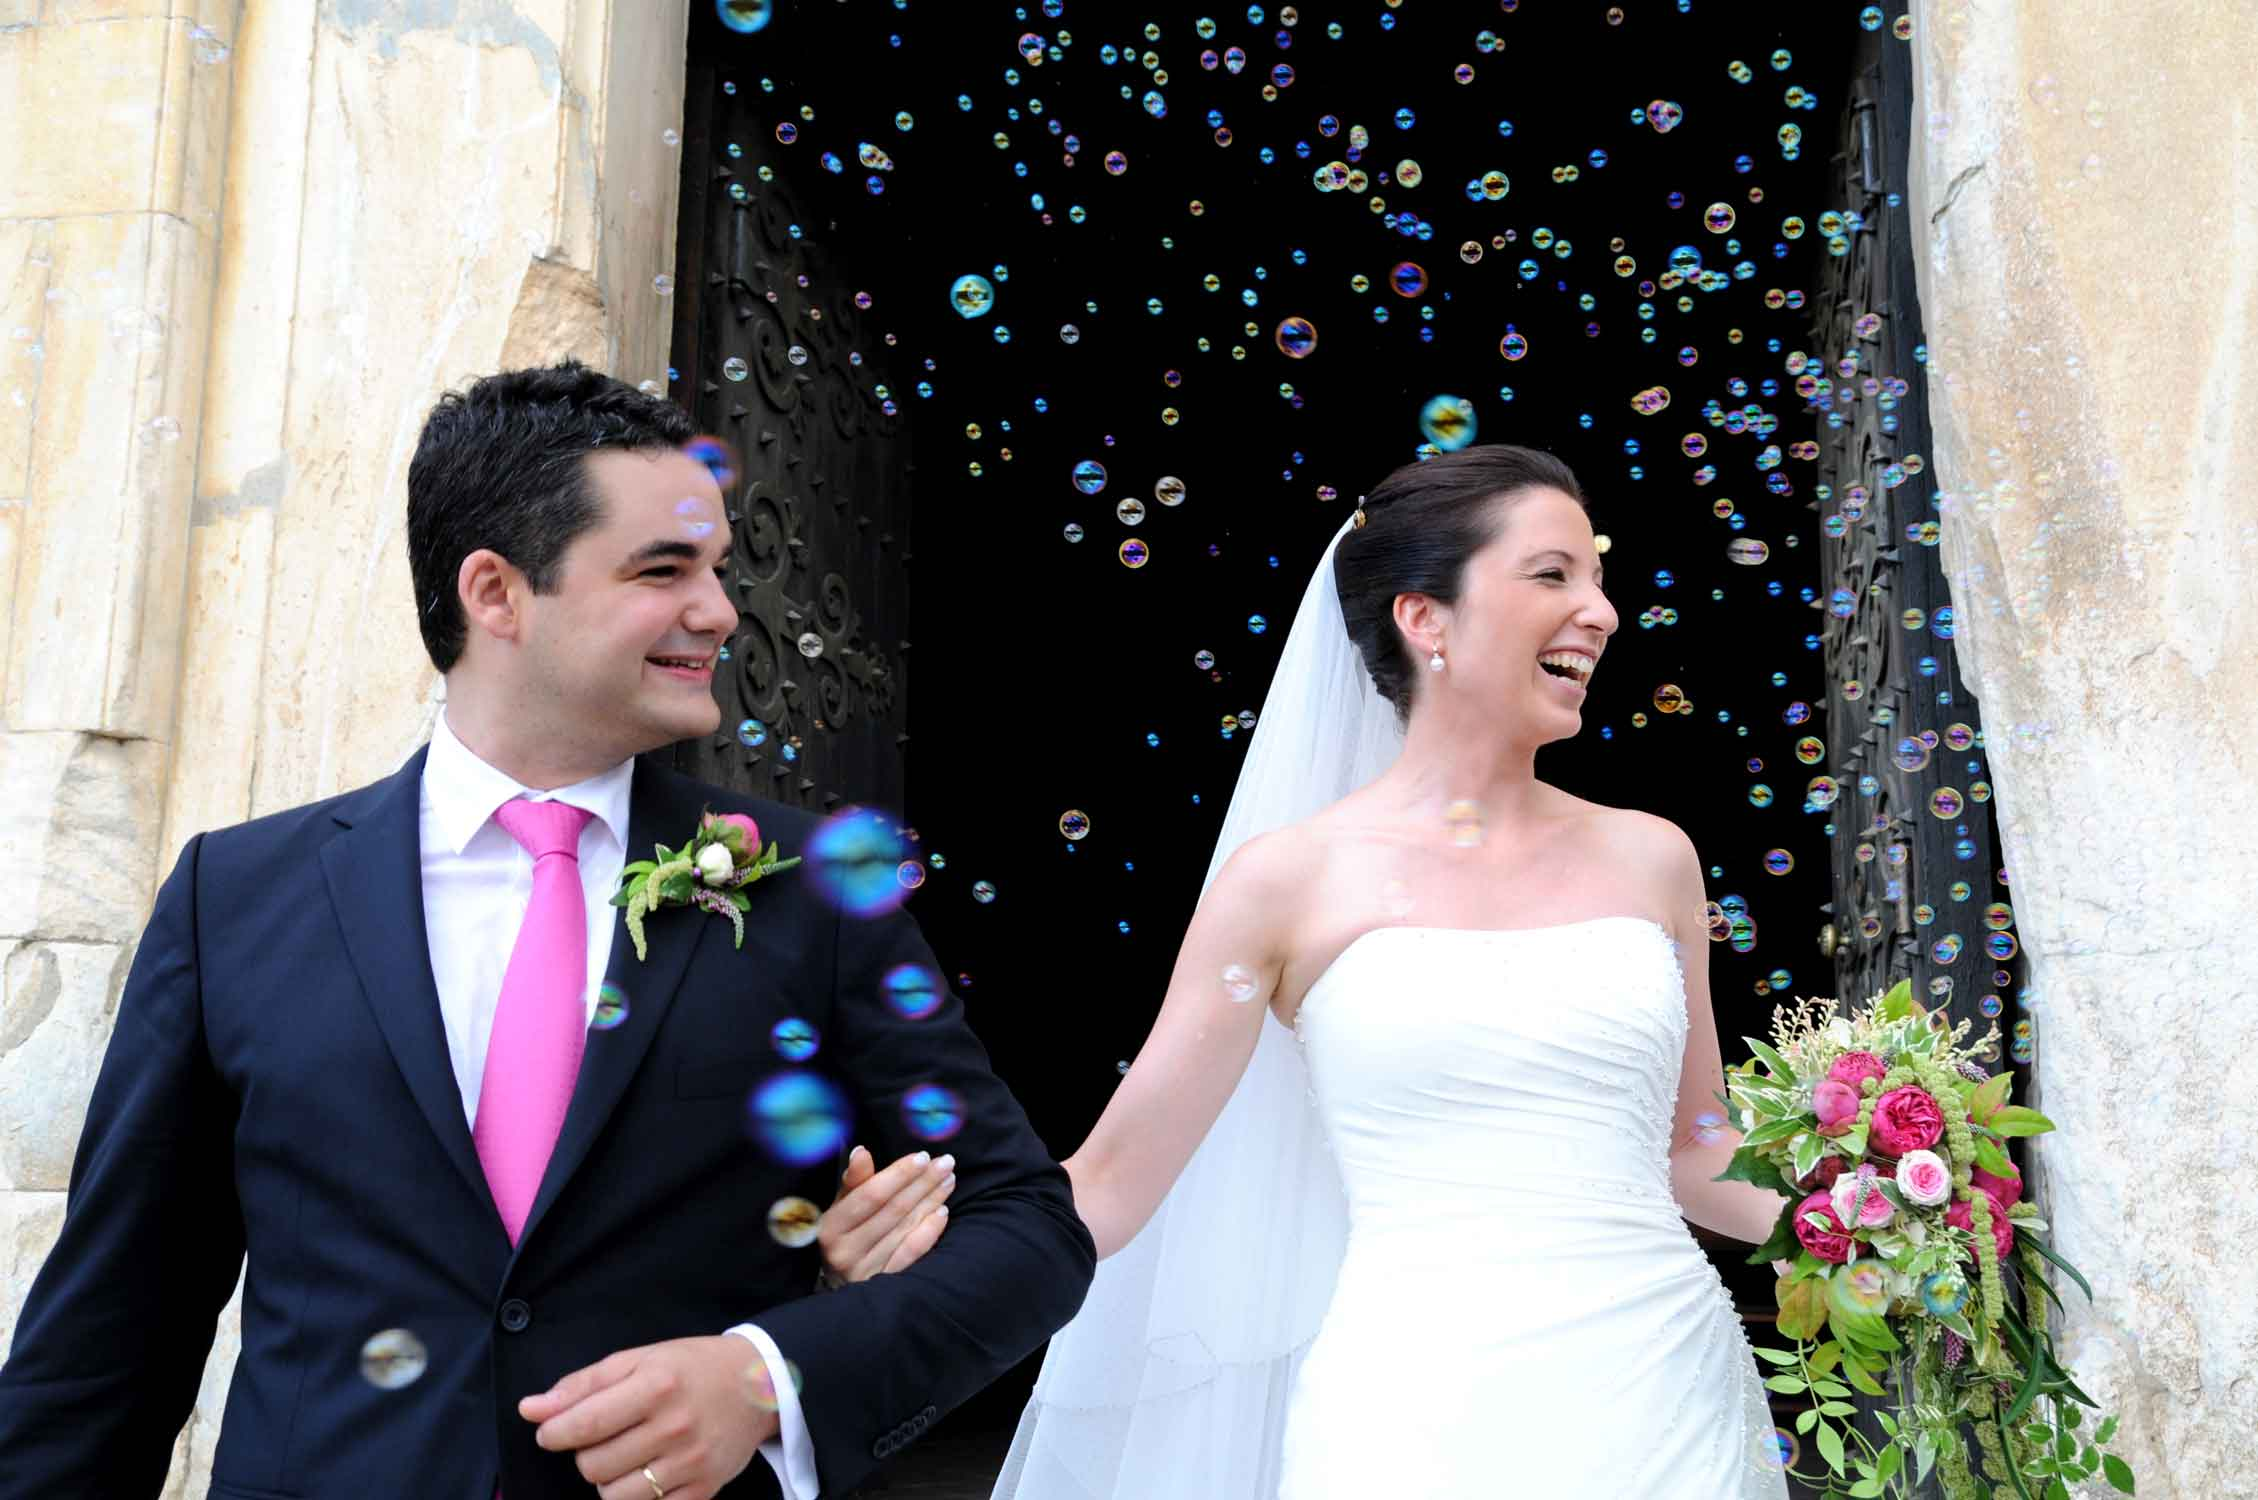 Barcelona Wedding photographer, exit church with bible shower